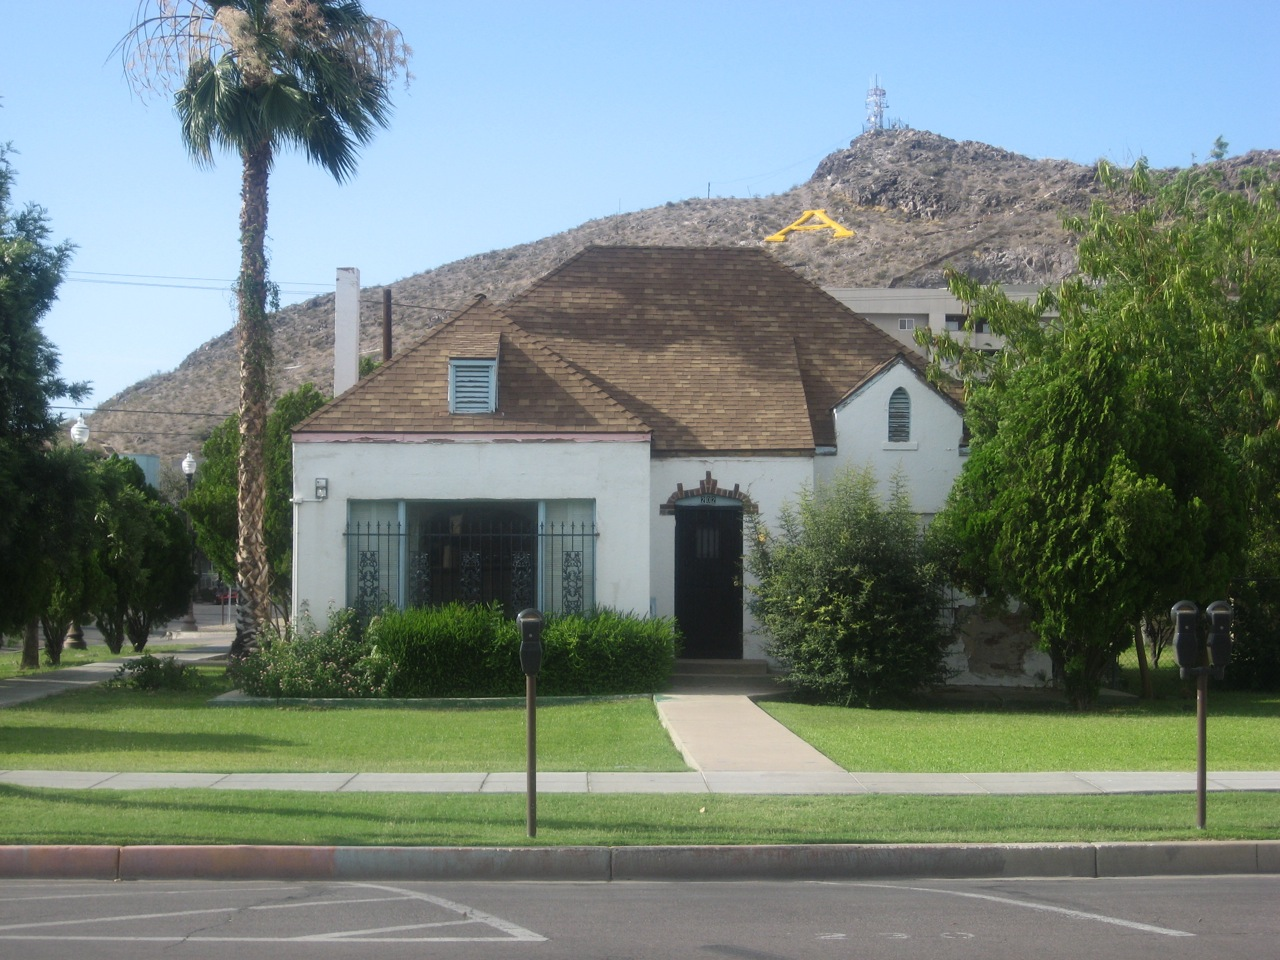 Http Commons Wikimedia Org Wiki File Harrington Birchett House Tempe Arizona Jpg